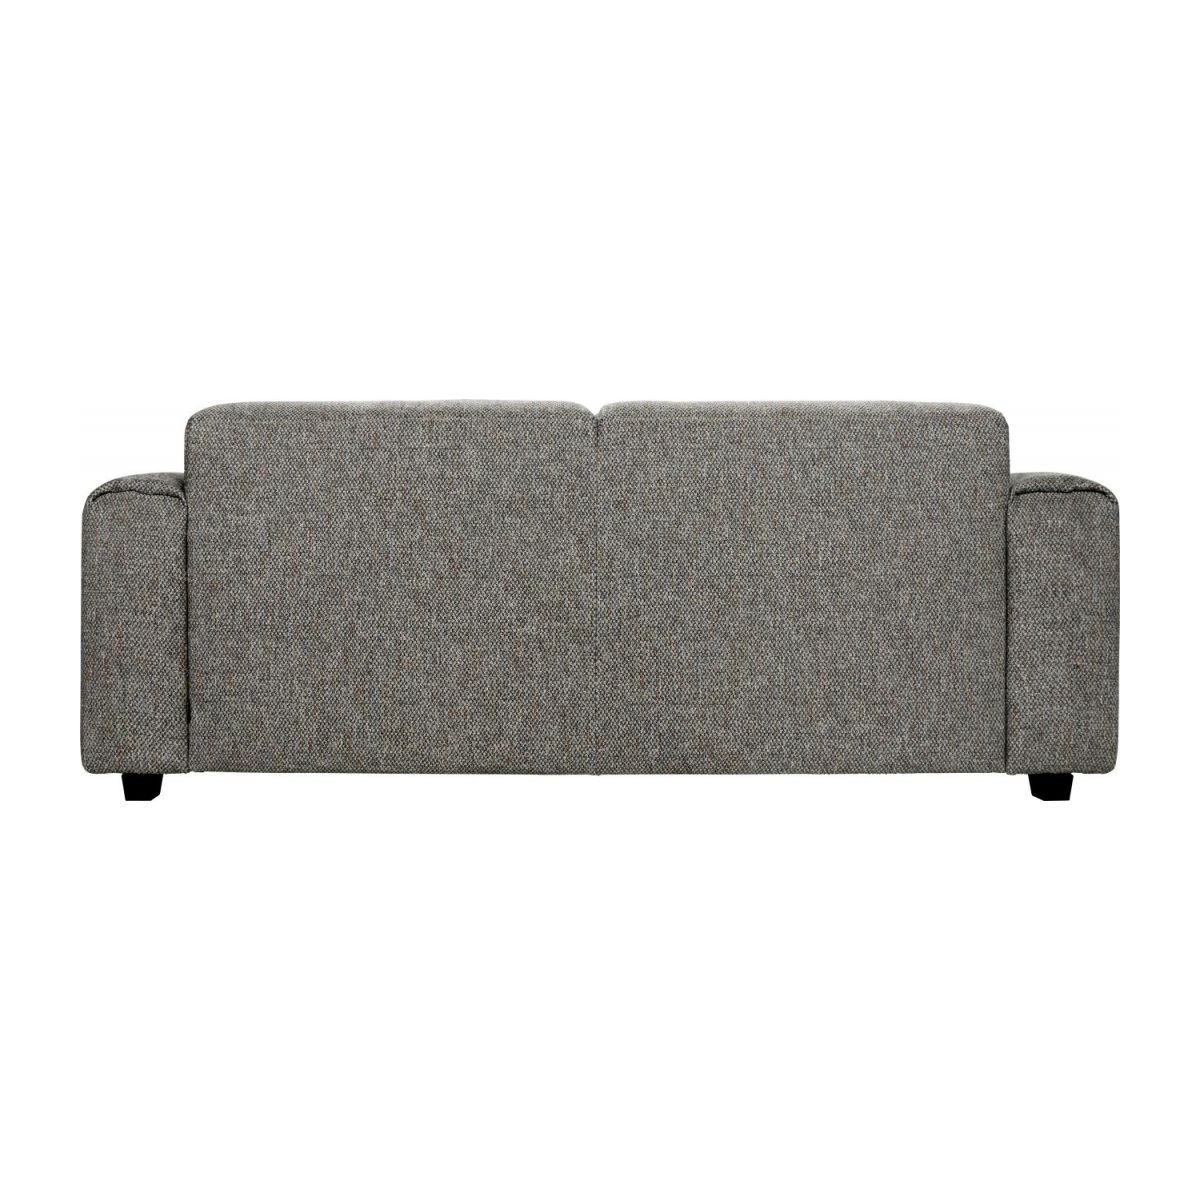 2-Sitzer Sofa aus Stoff Bellagio night black n°5